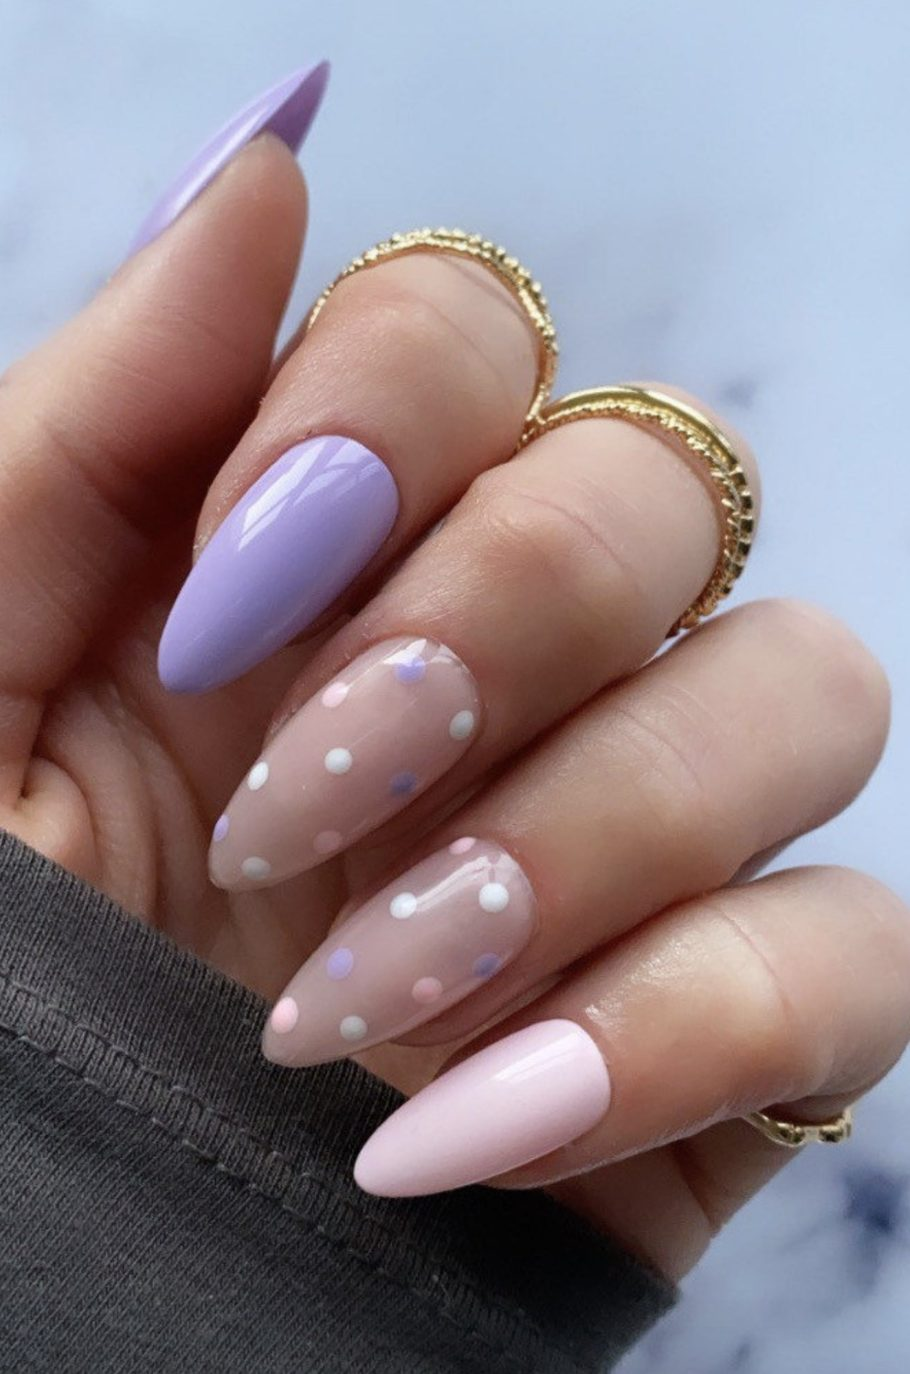 Pastel purple and pink nails with polka dots